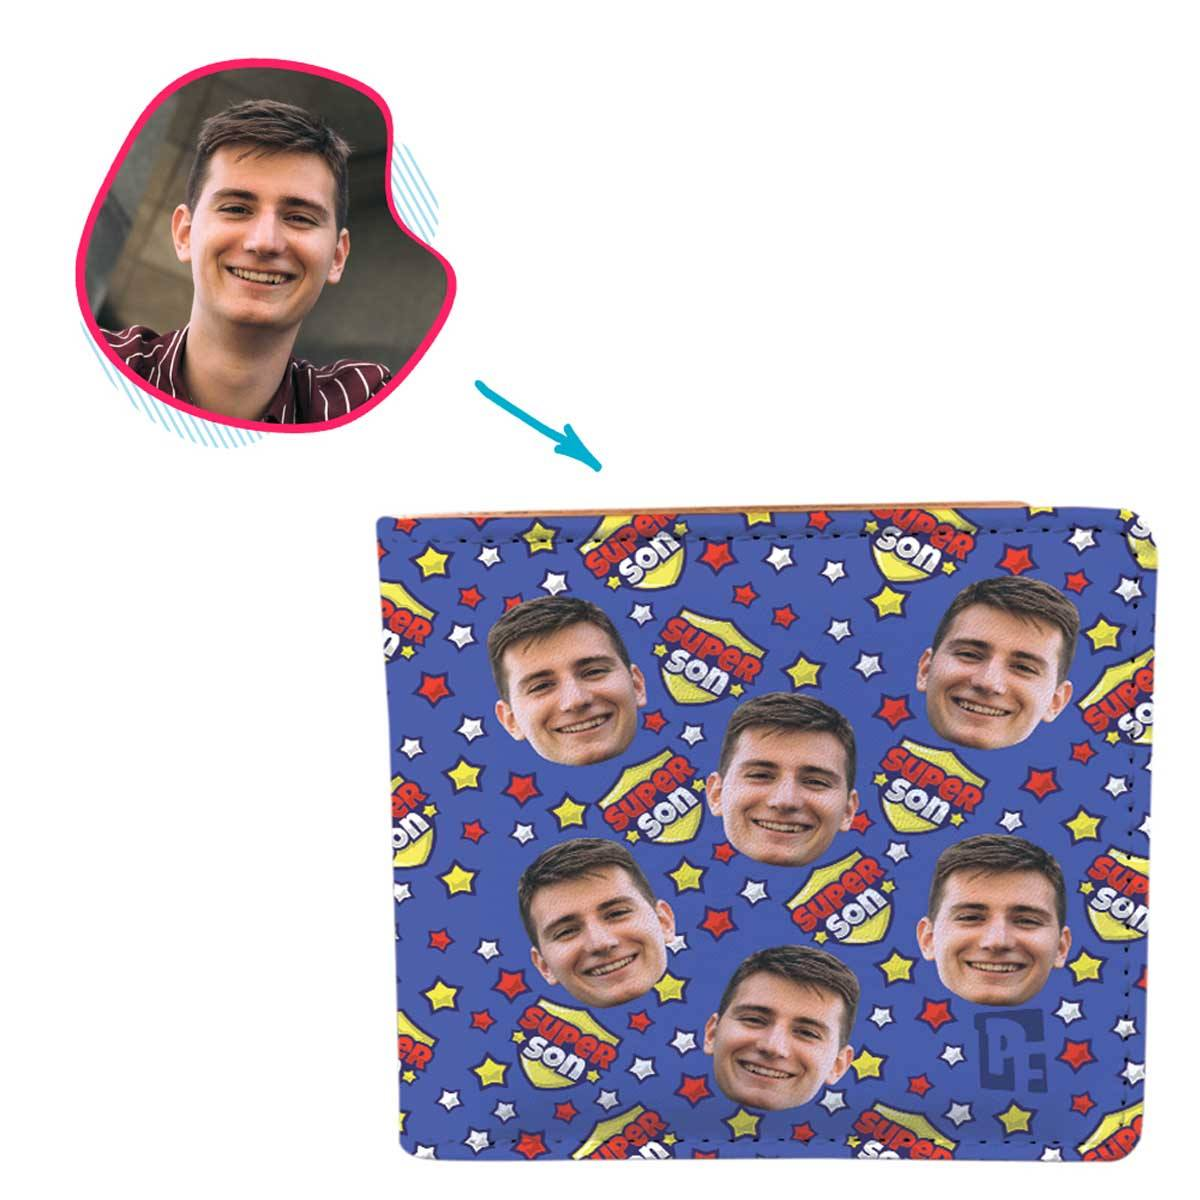 darkblue Super Son wallet personalized with photo of face printed on it